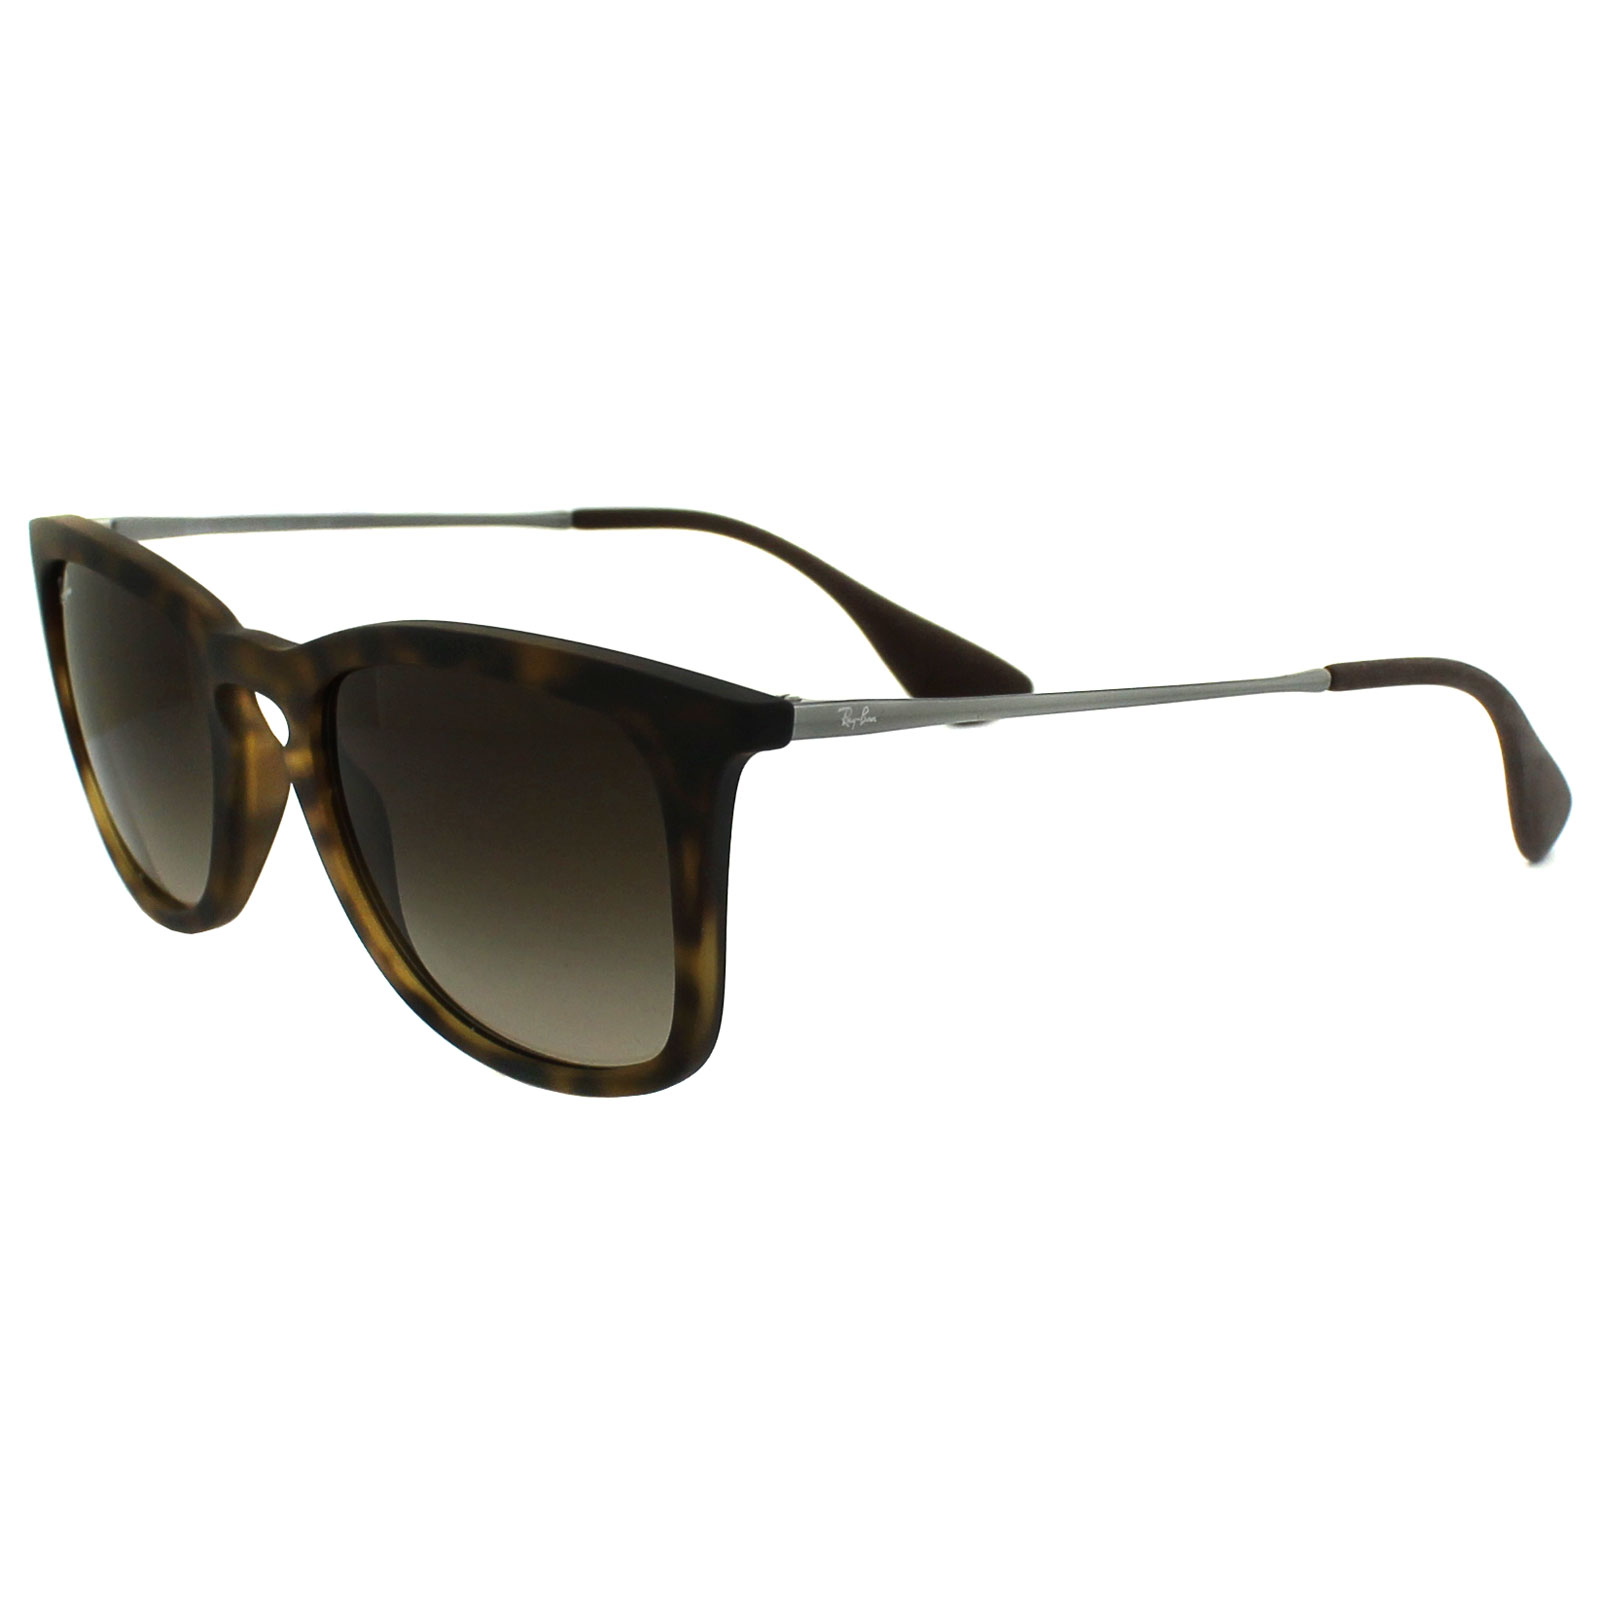 7ed633d000 Cheap Ray-Ban Sunglasses - Discounted Sunglasses